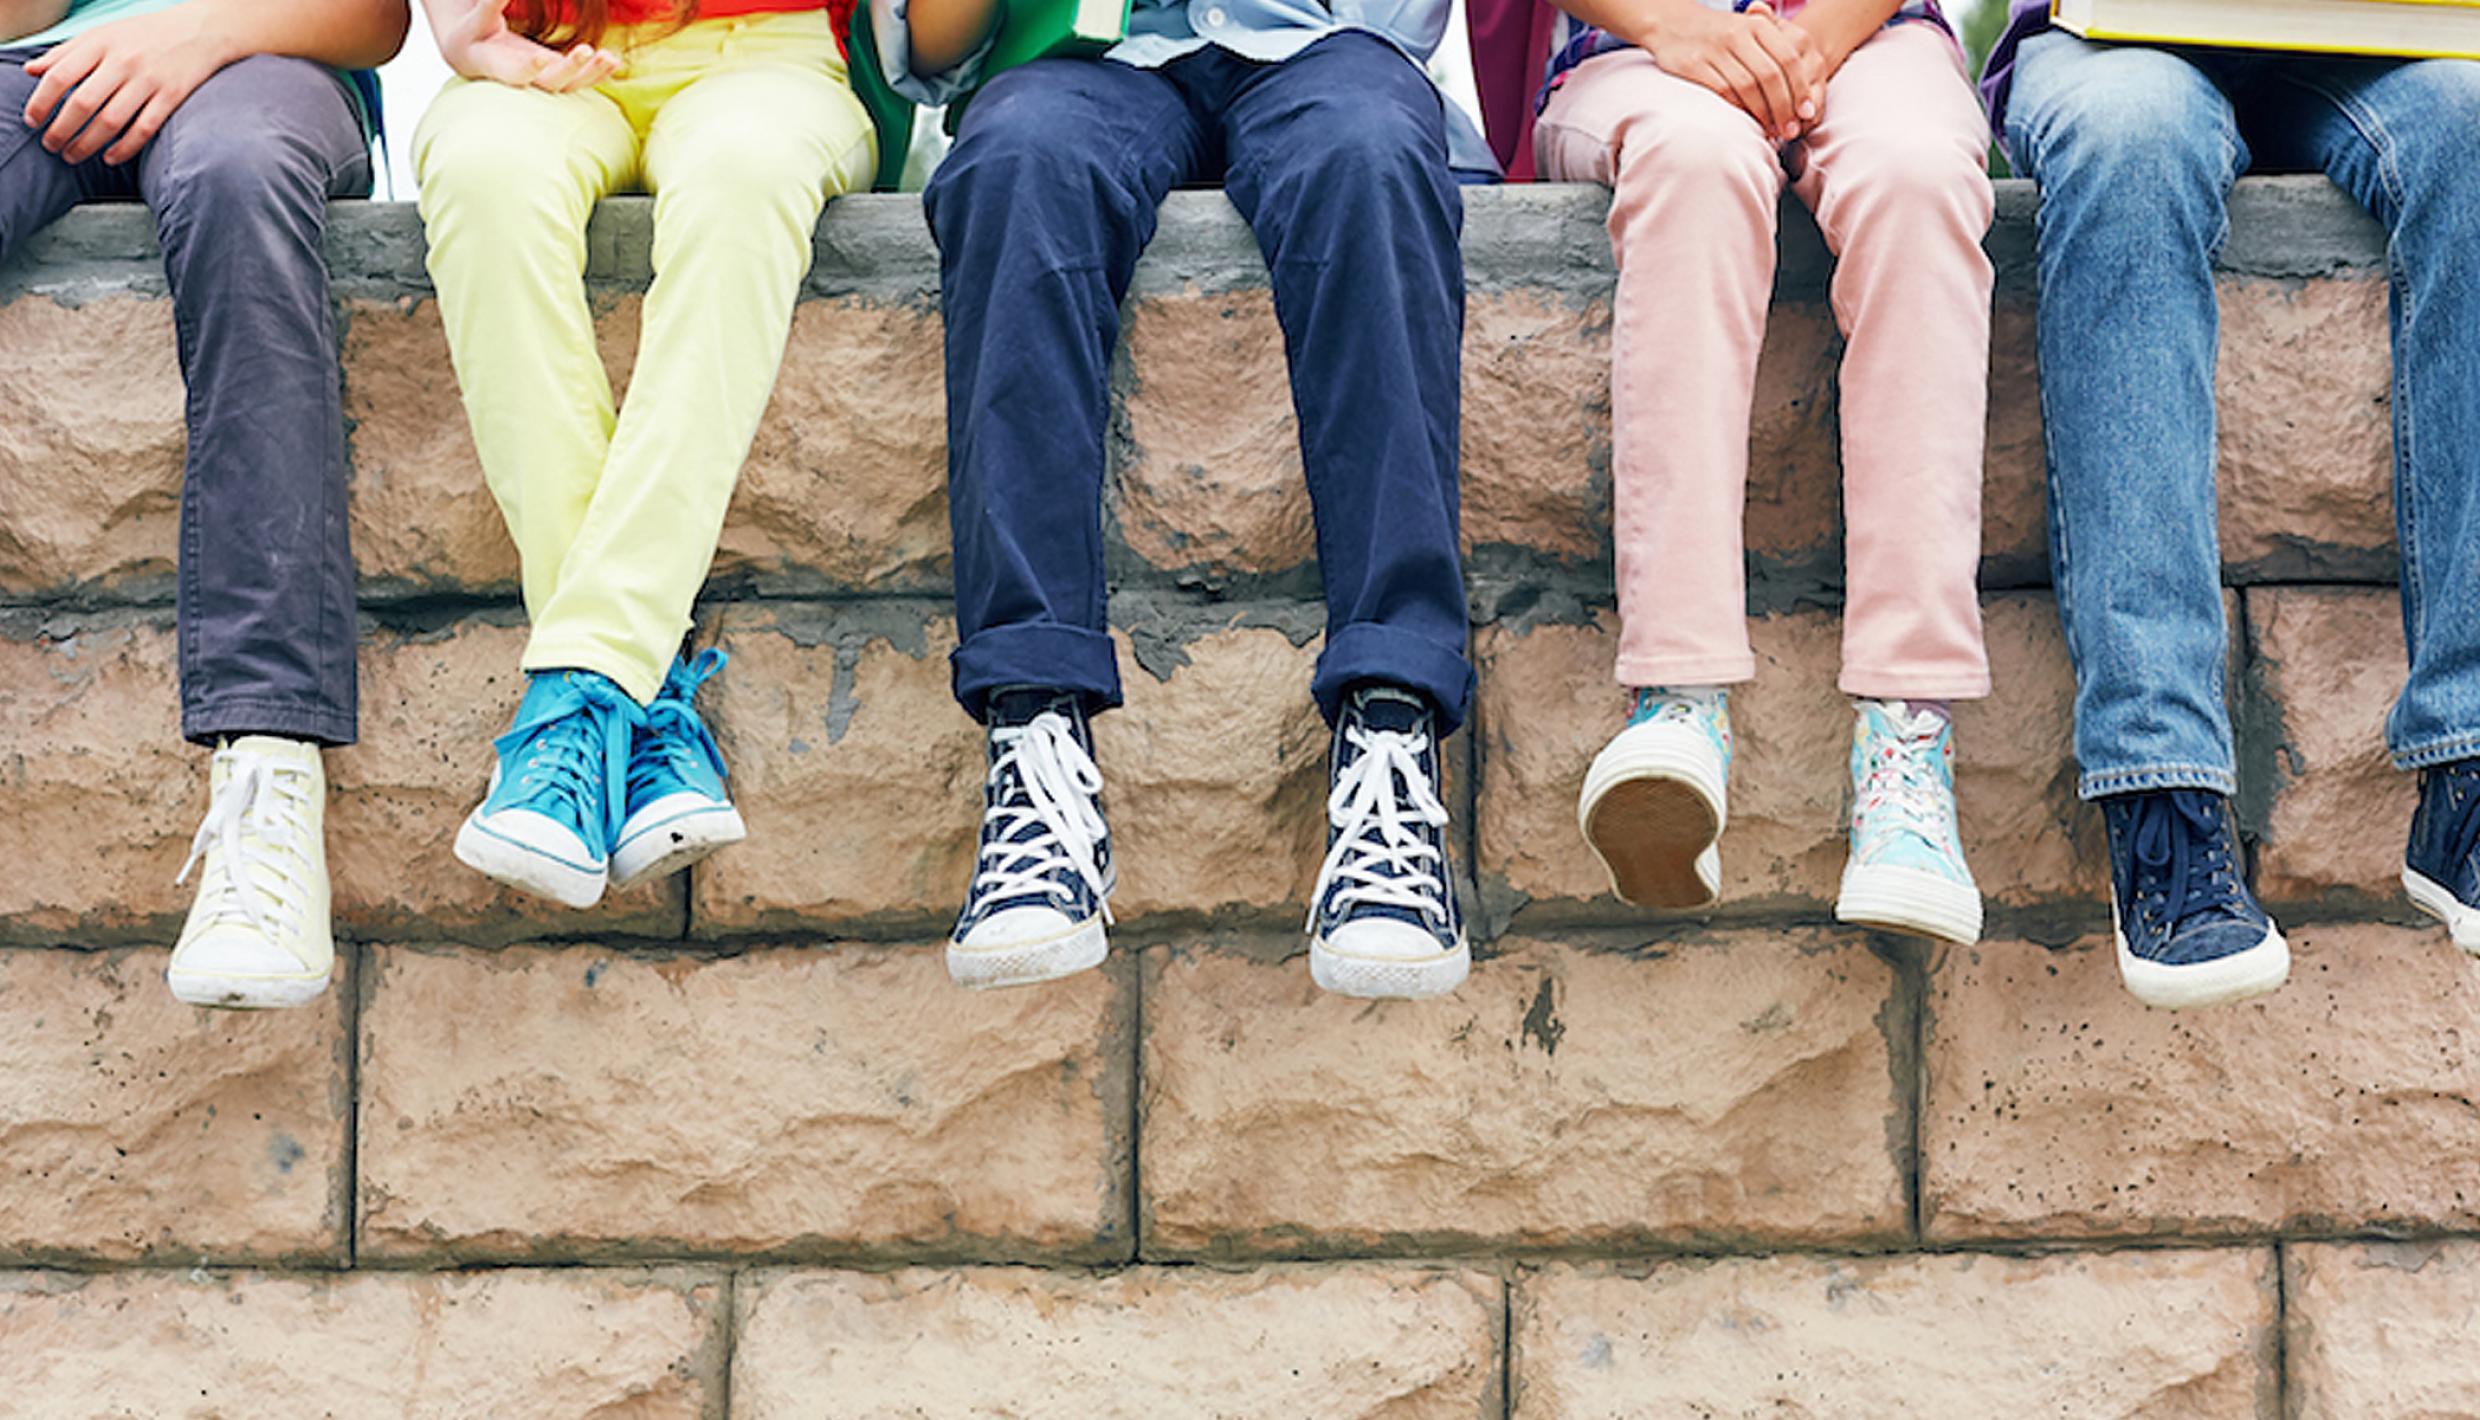 A row of kids dangling their legs over a low wall